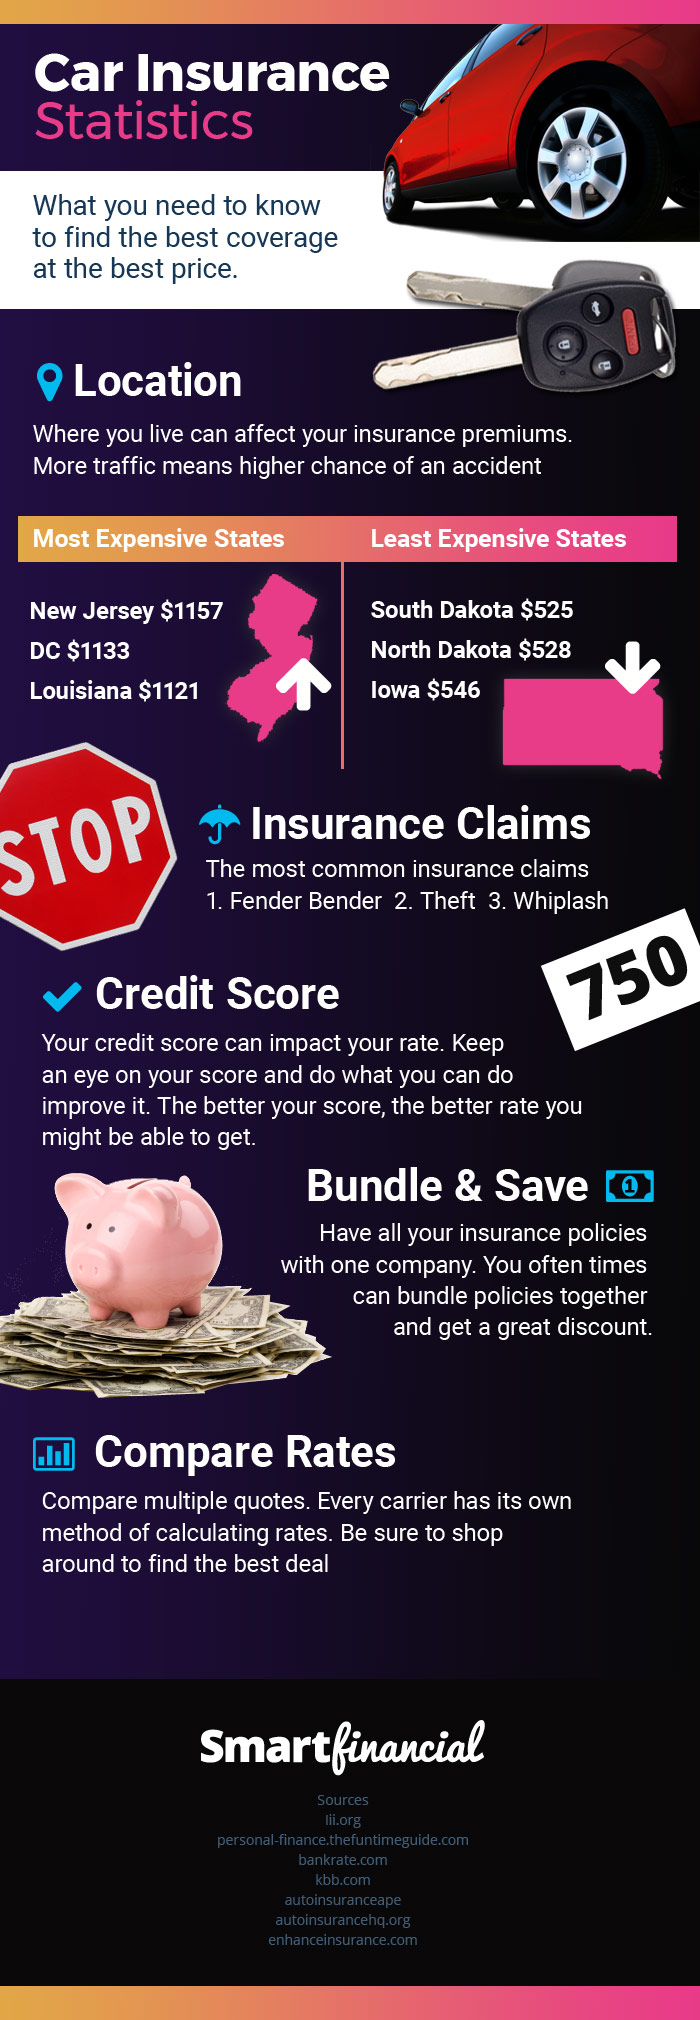 infographic of car insurance statistics